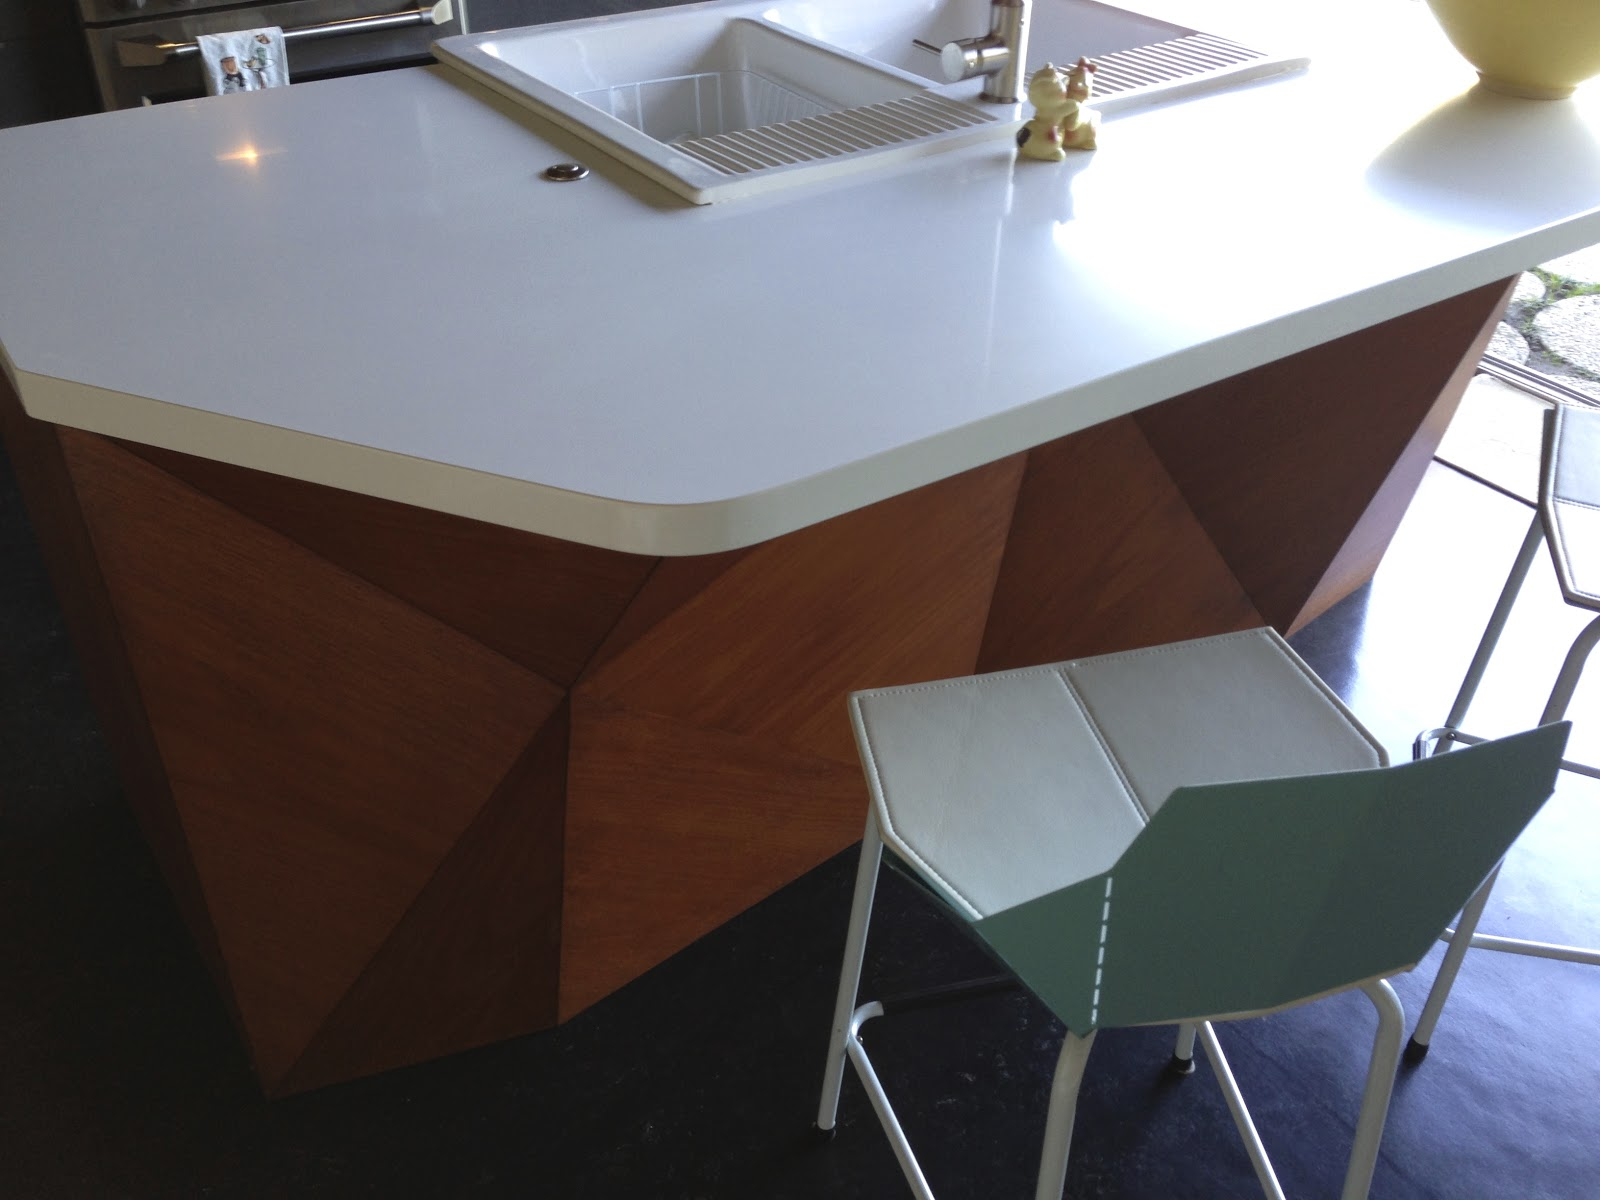 Ikea Poang Chair Cushion Replacement ~ How To Undermount Ikeas Domsjo Sink Cape 27  Apps Directories